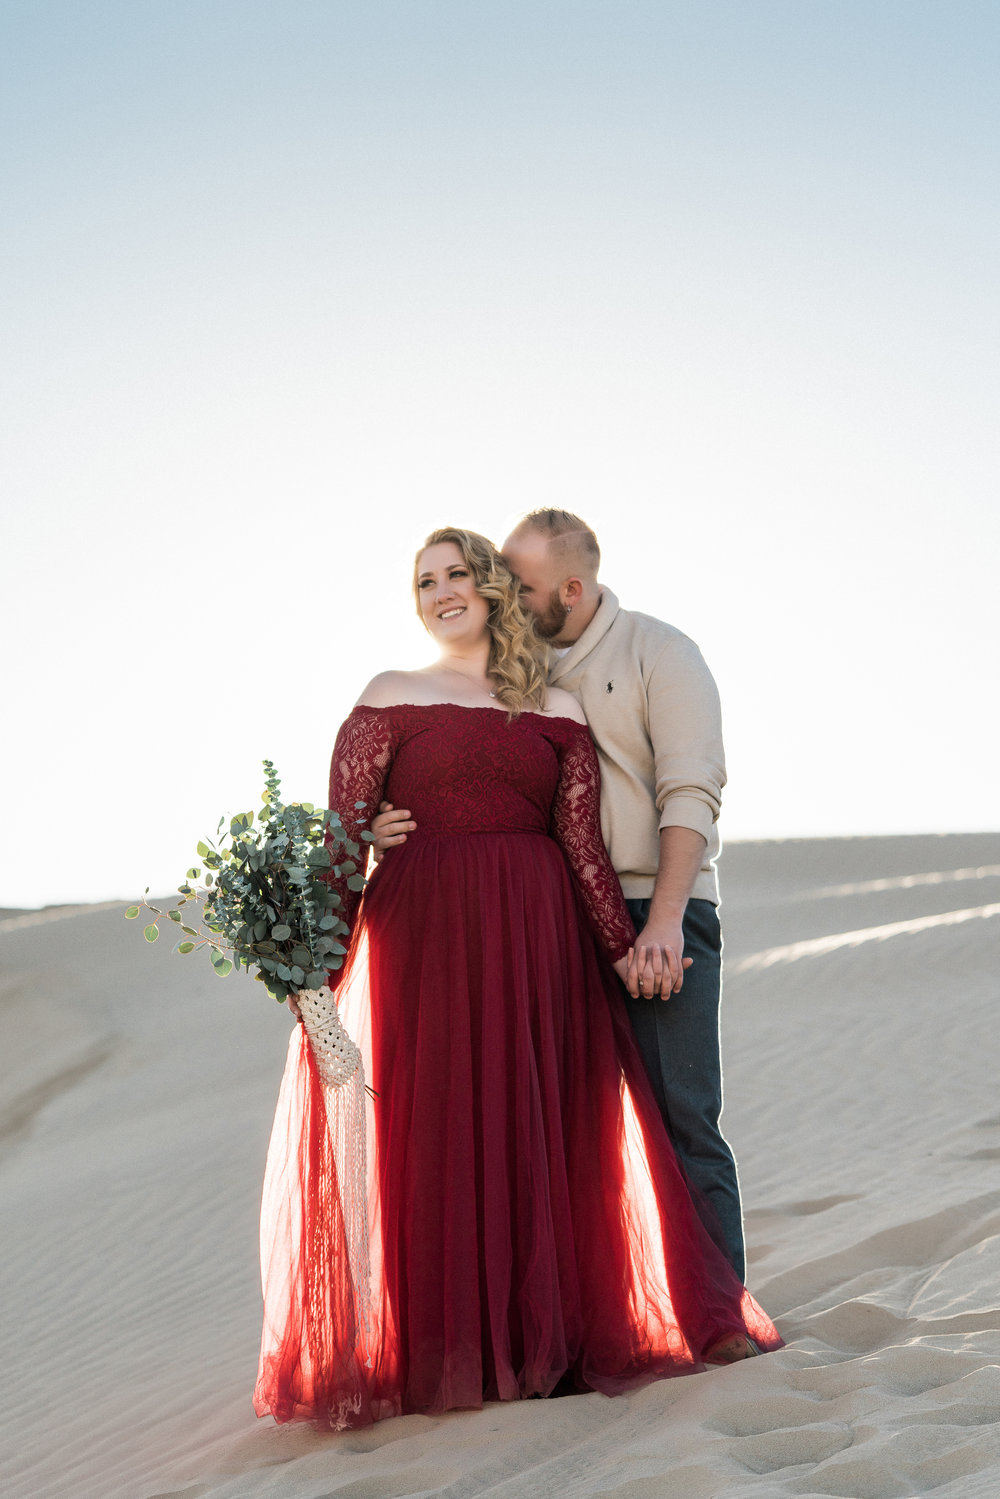 NewMexico-Sand-Dunes-Engagement-Carissa-and-Ben-1065.jpg